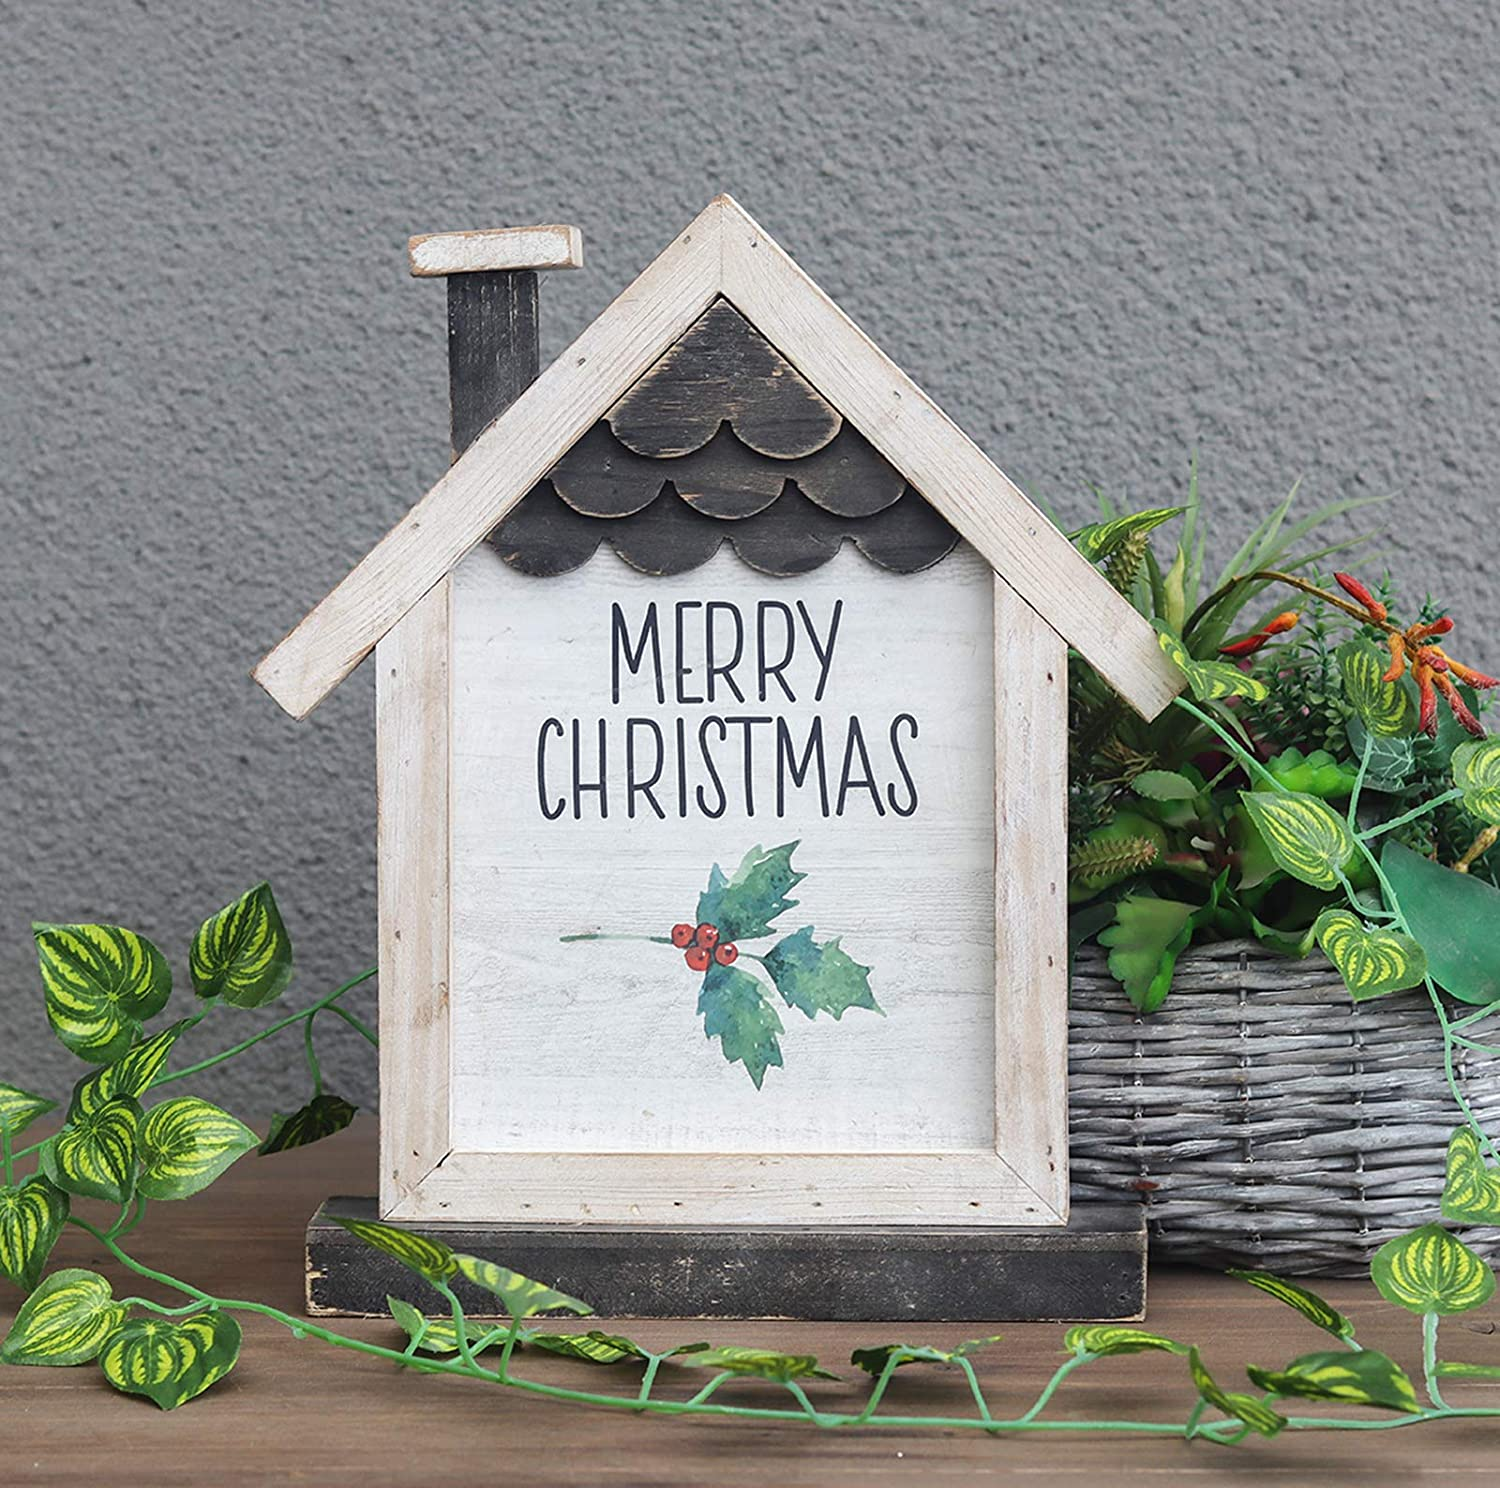 Wooden House Shaped Tabletop Decor with Merry Christmas Sign